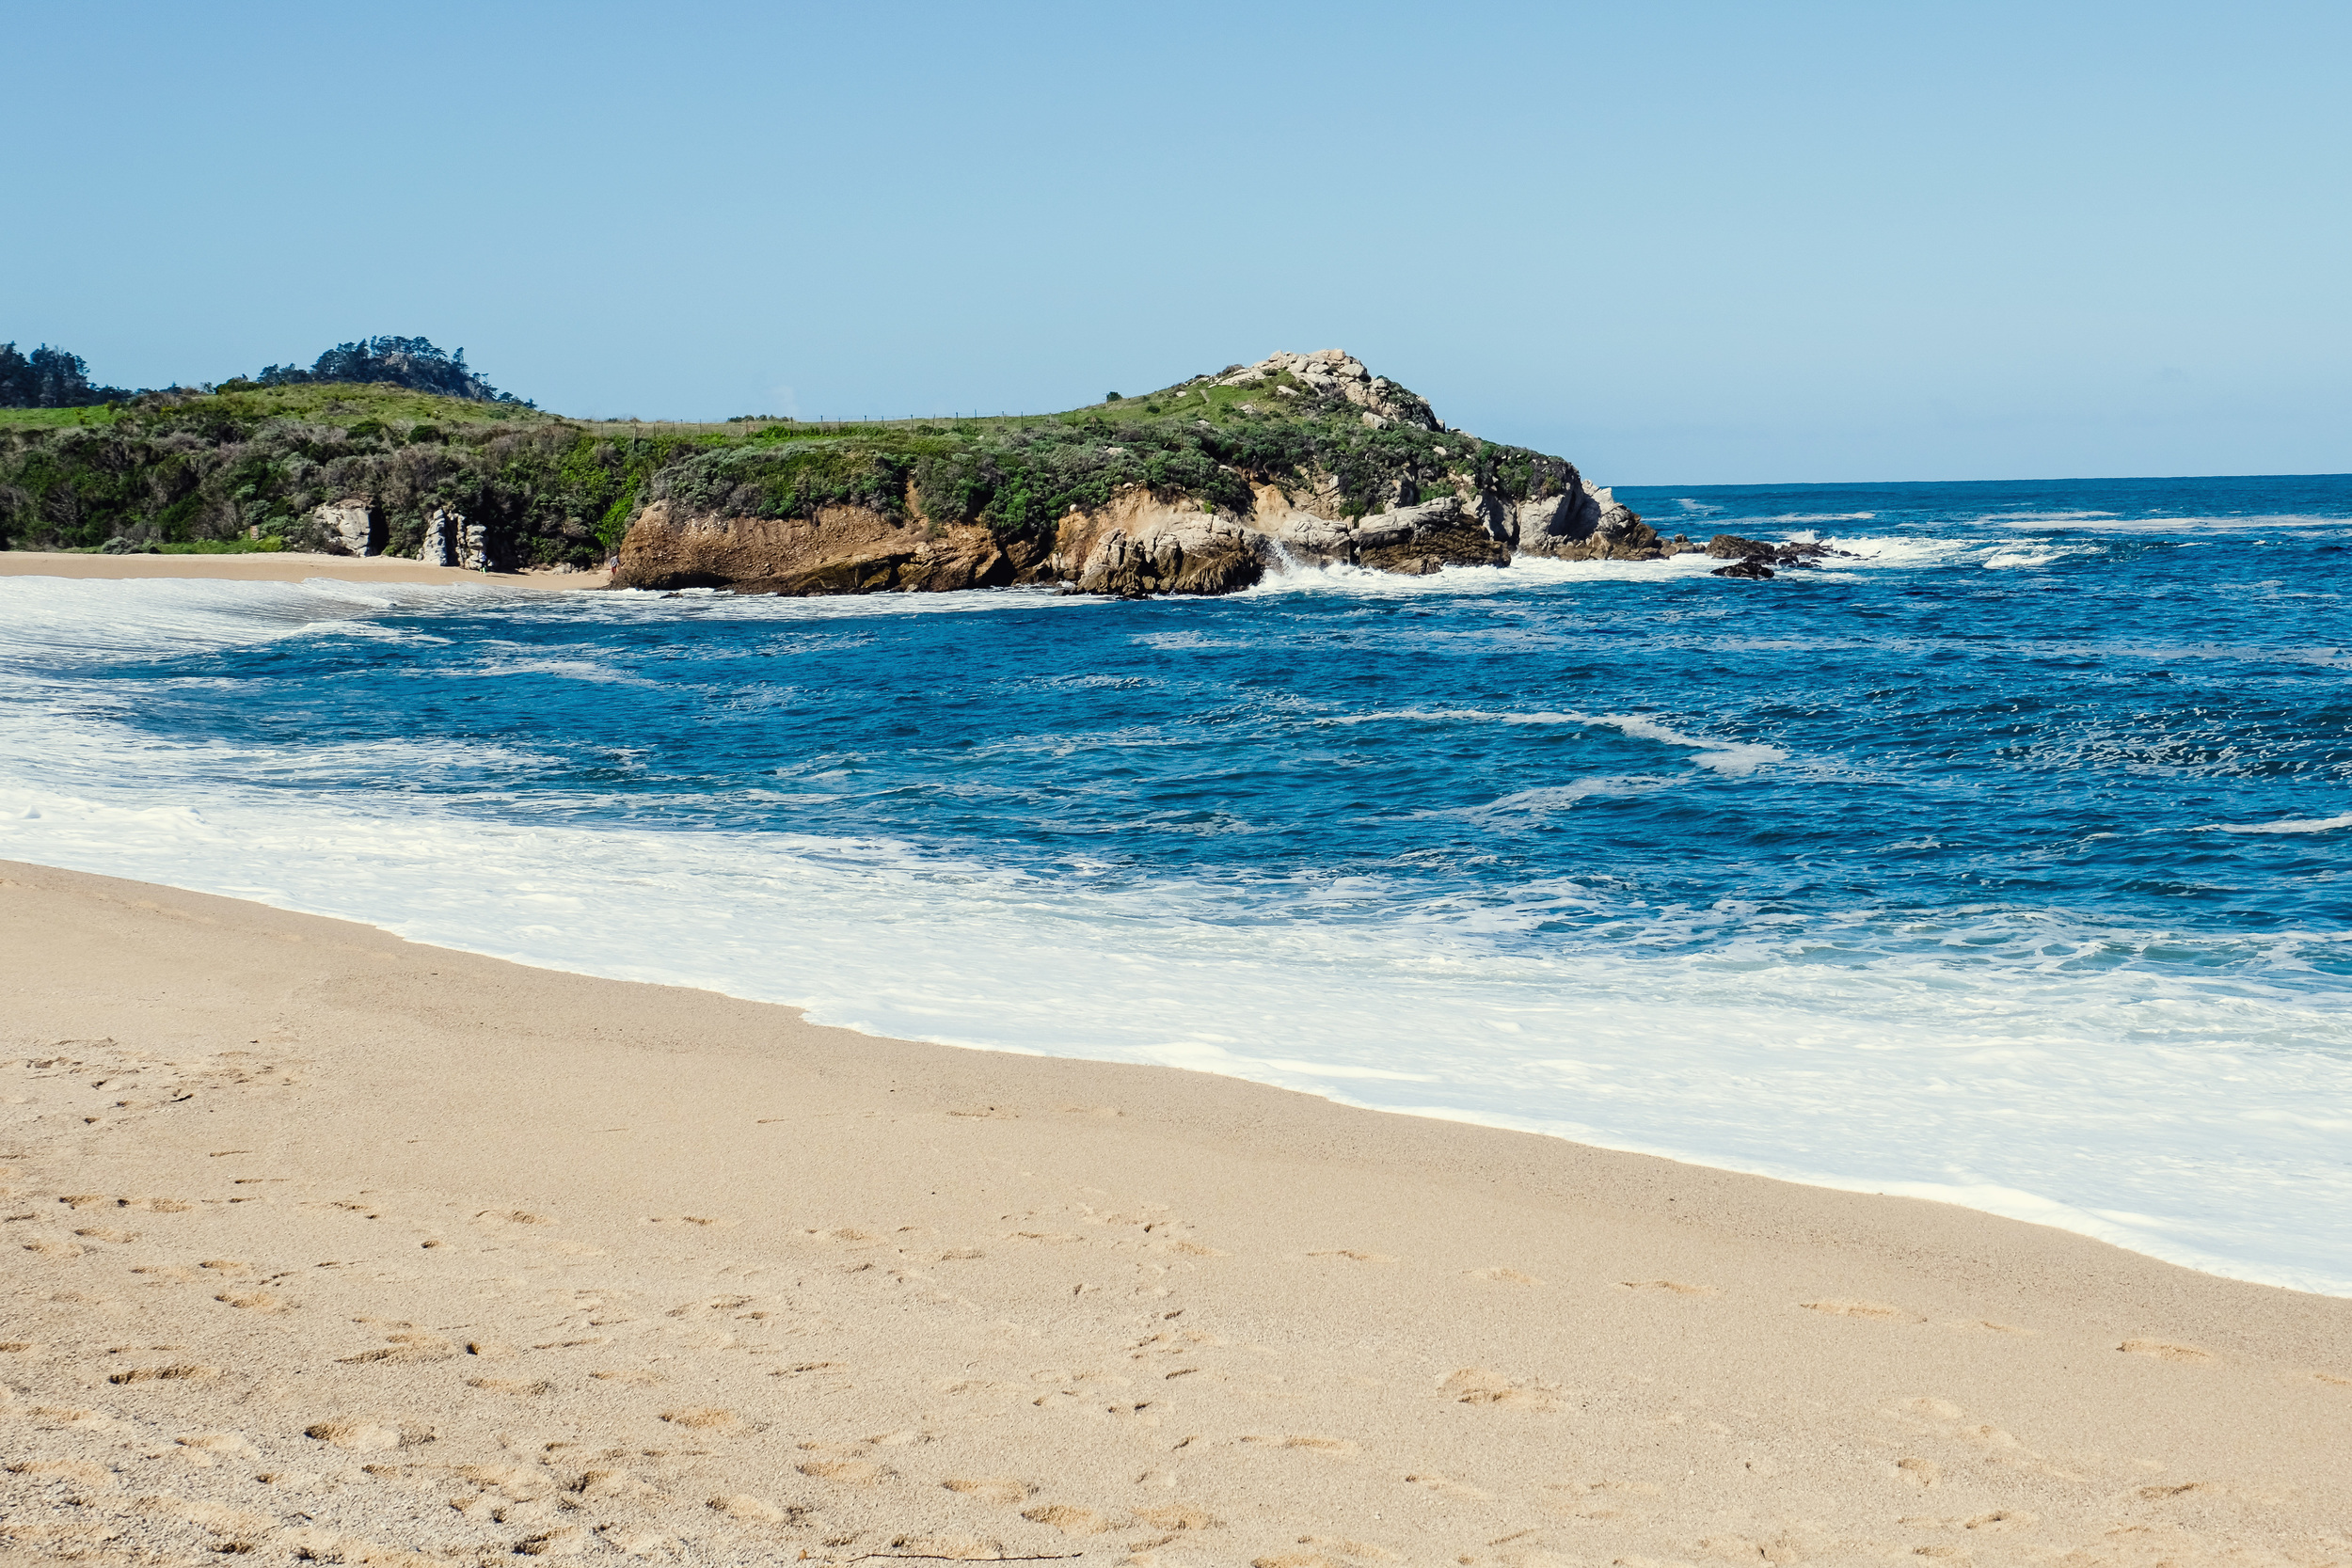 as we leave monterey, ca we enjoyed the morning breeze at  carmel river cove along hwy 1